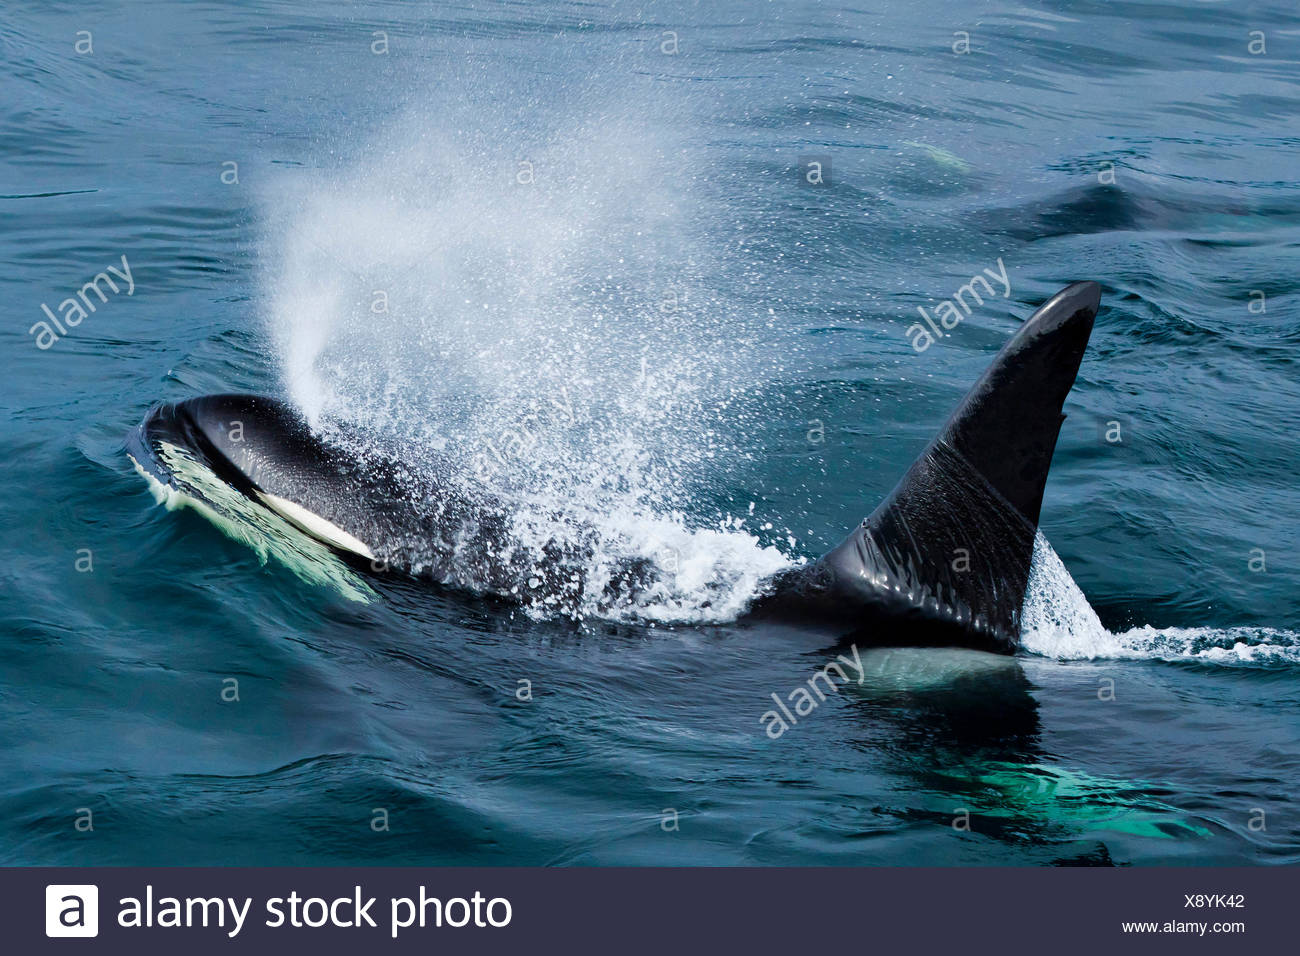 Orca Blowhole Stock Photos Orca Blowhole Stock Images Alamy